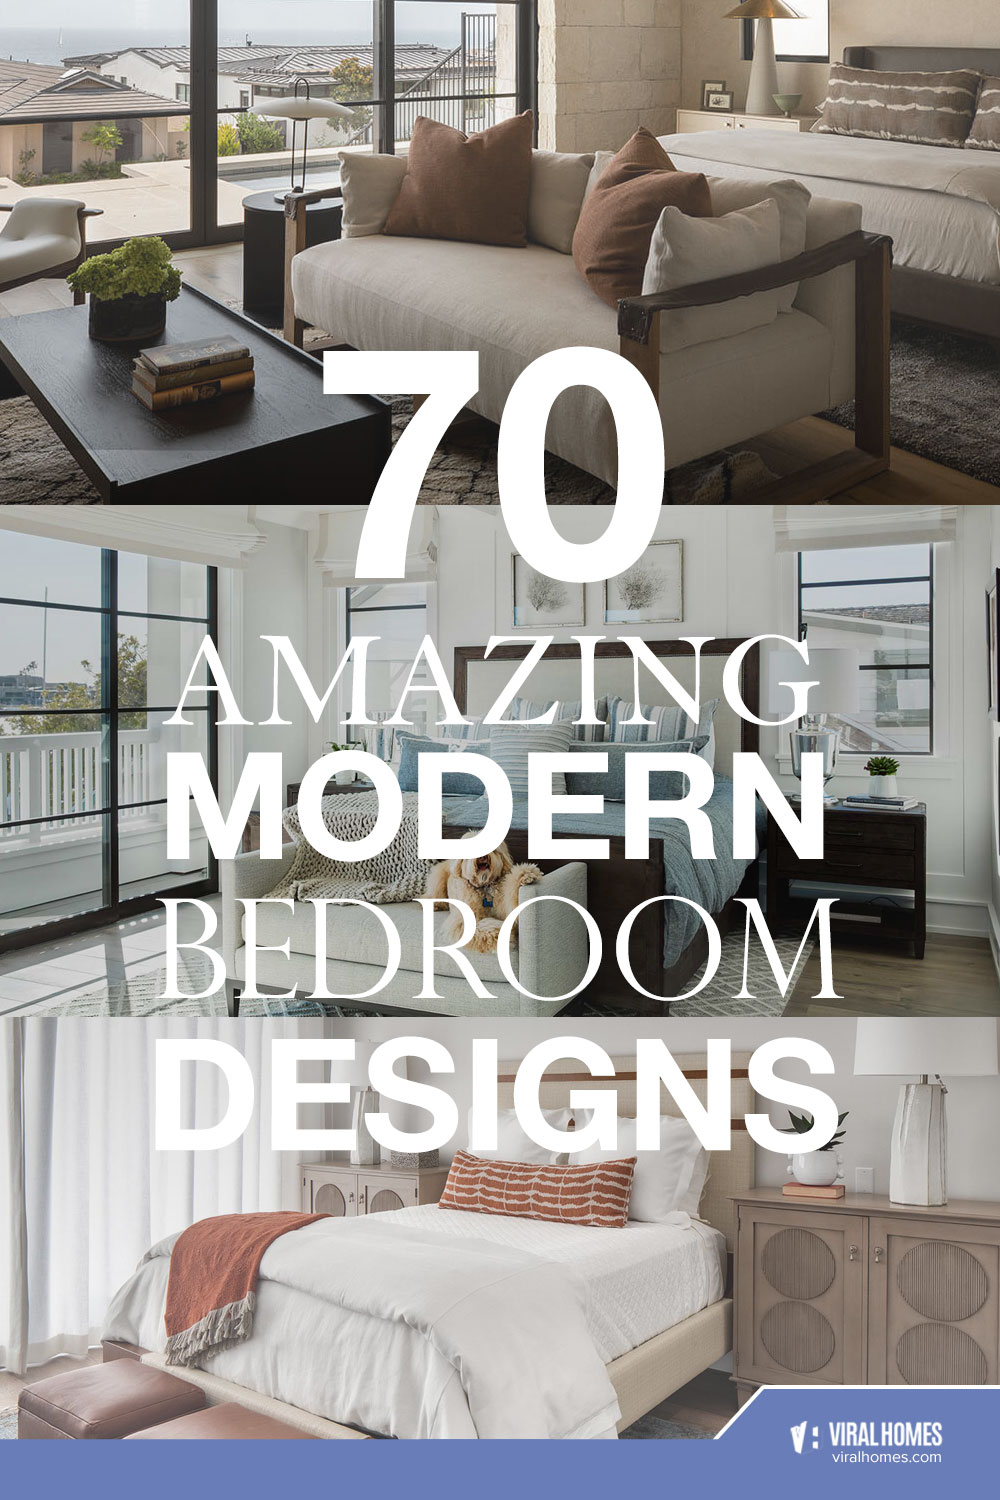 Amazing Modern Bedroom Designs You Can't Get Enough Of